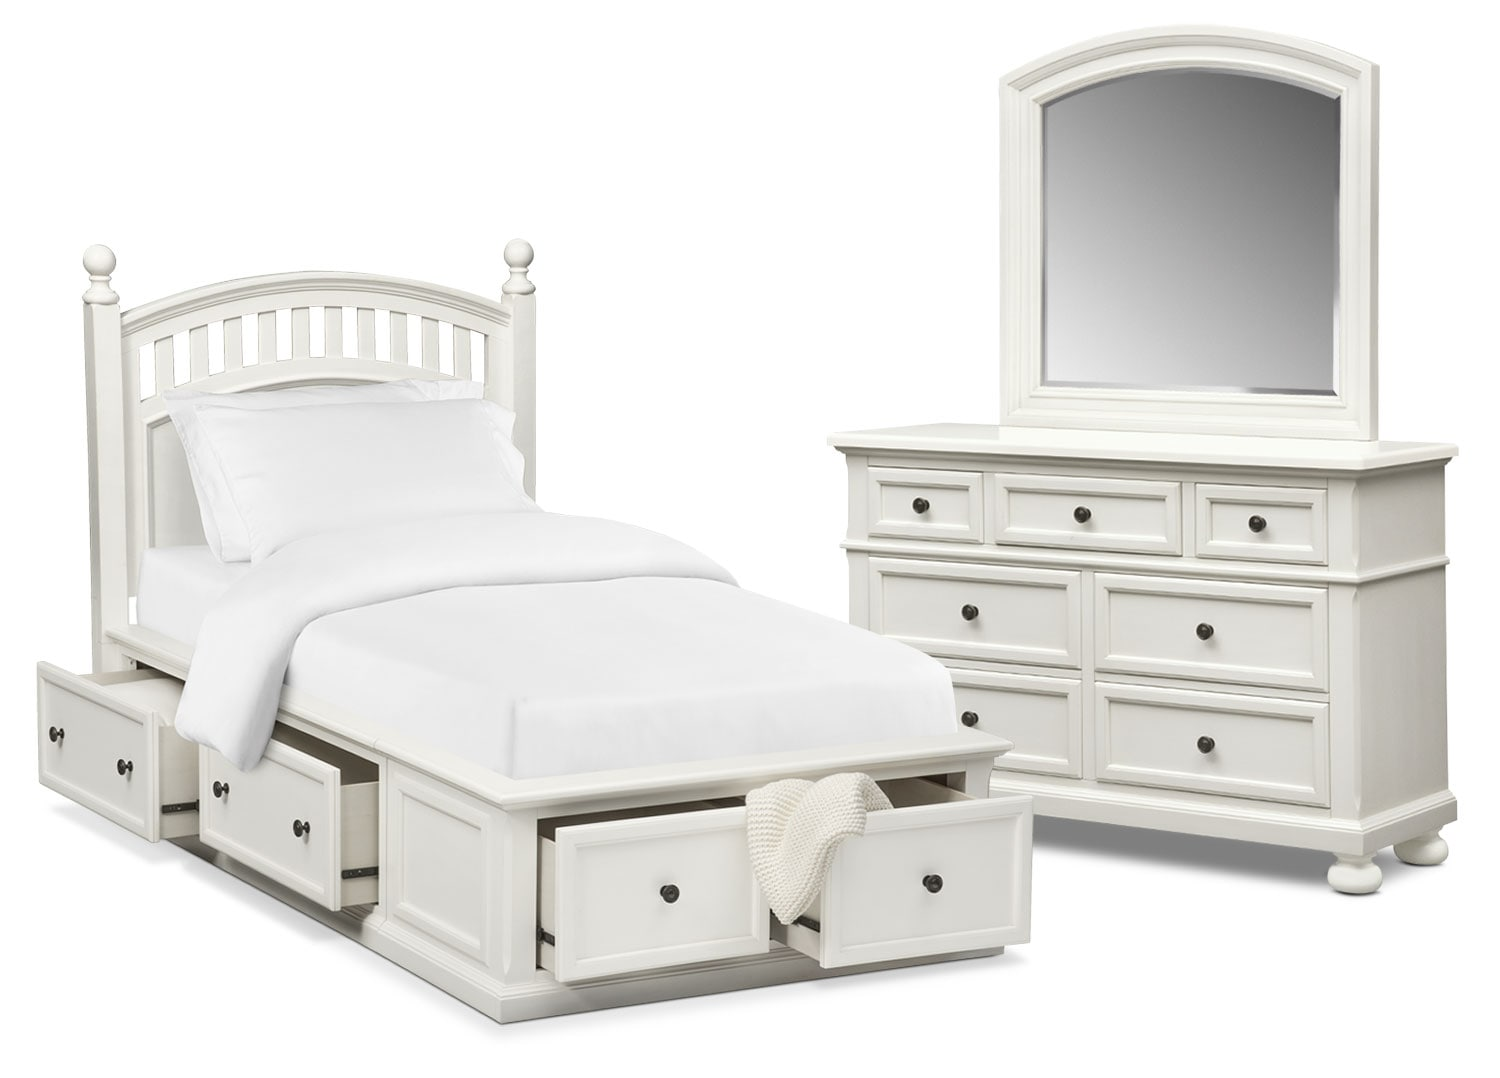 Bedroom Furniture - Hanover Youth 5-Piece Twin Poster Bedroom Set with Storage - White